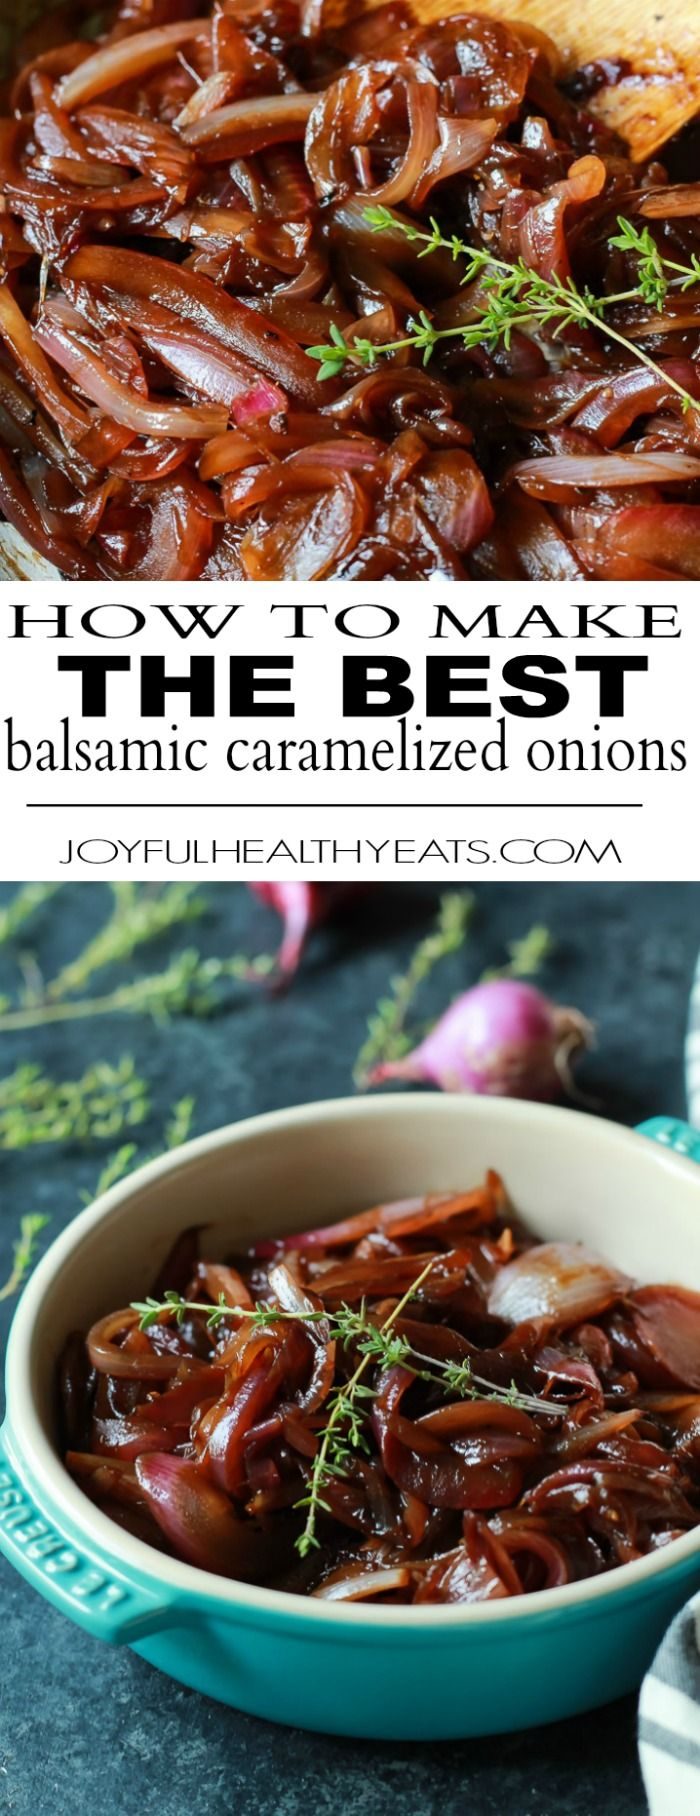 How to make the BEST Balsamic Caramelized Onions using only 5 ingredients, these are mind blowingly good! | joyfulhealthyeats.com #recipes